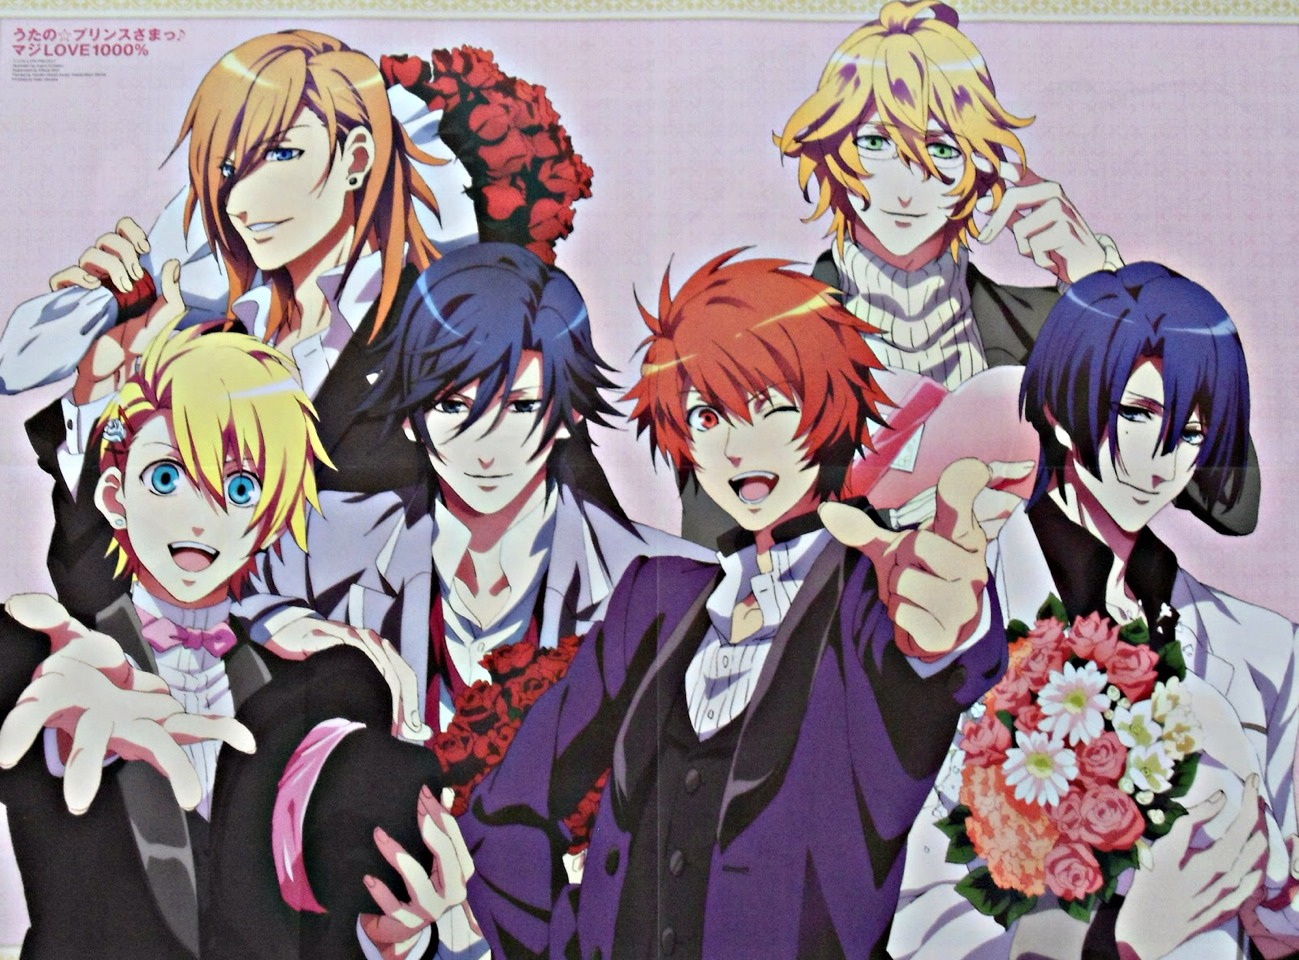 Uta No Prince Sama is really great! There is no English dubbed but there is subbed and I didn't mind a bit. It's a great story and has loveable characters.